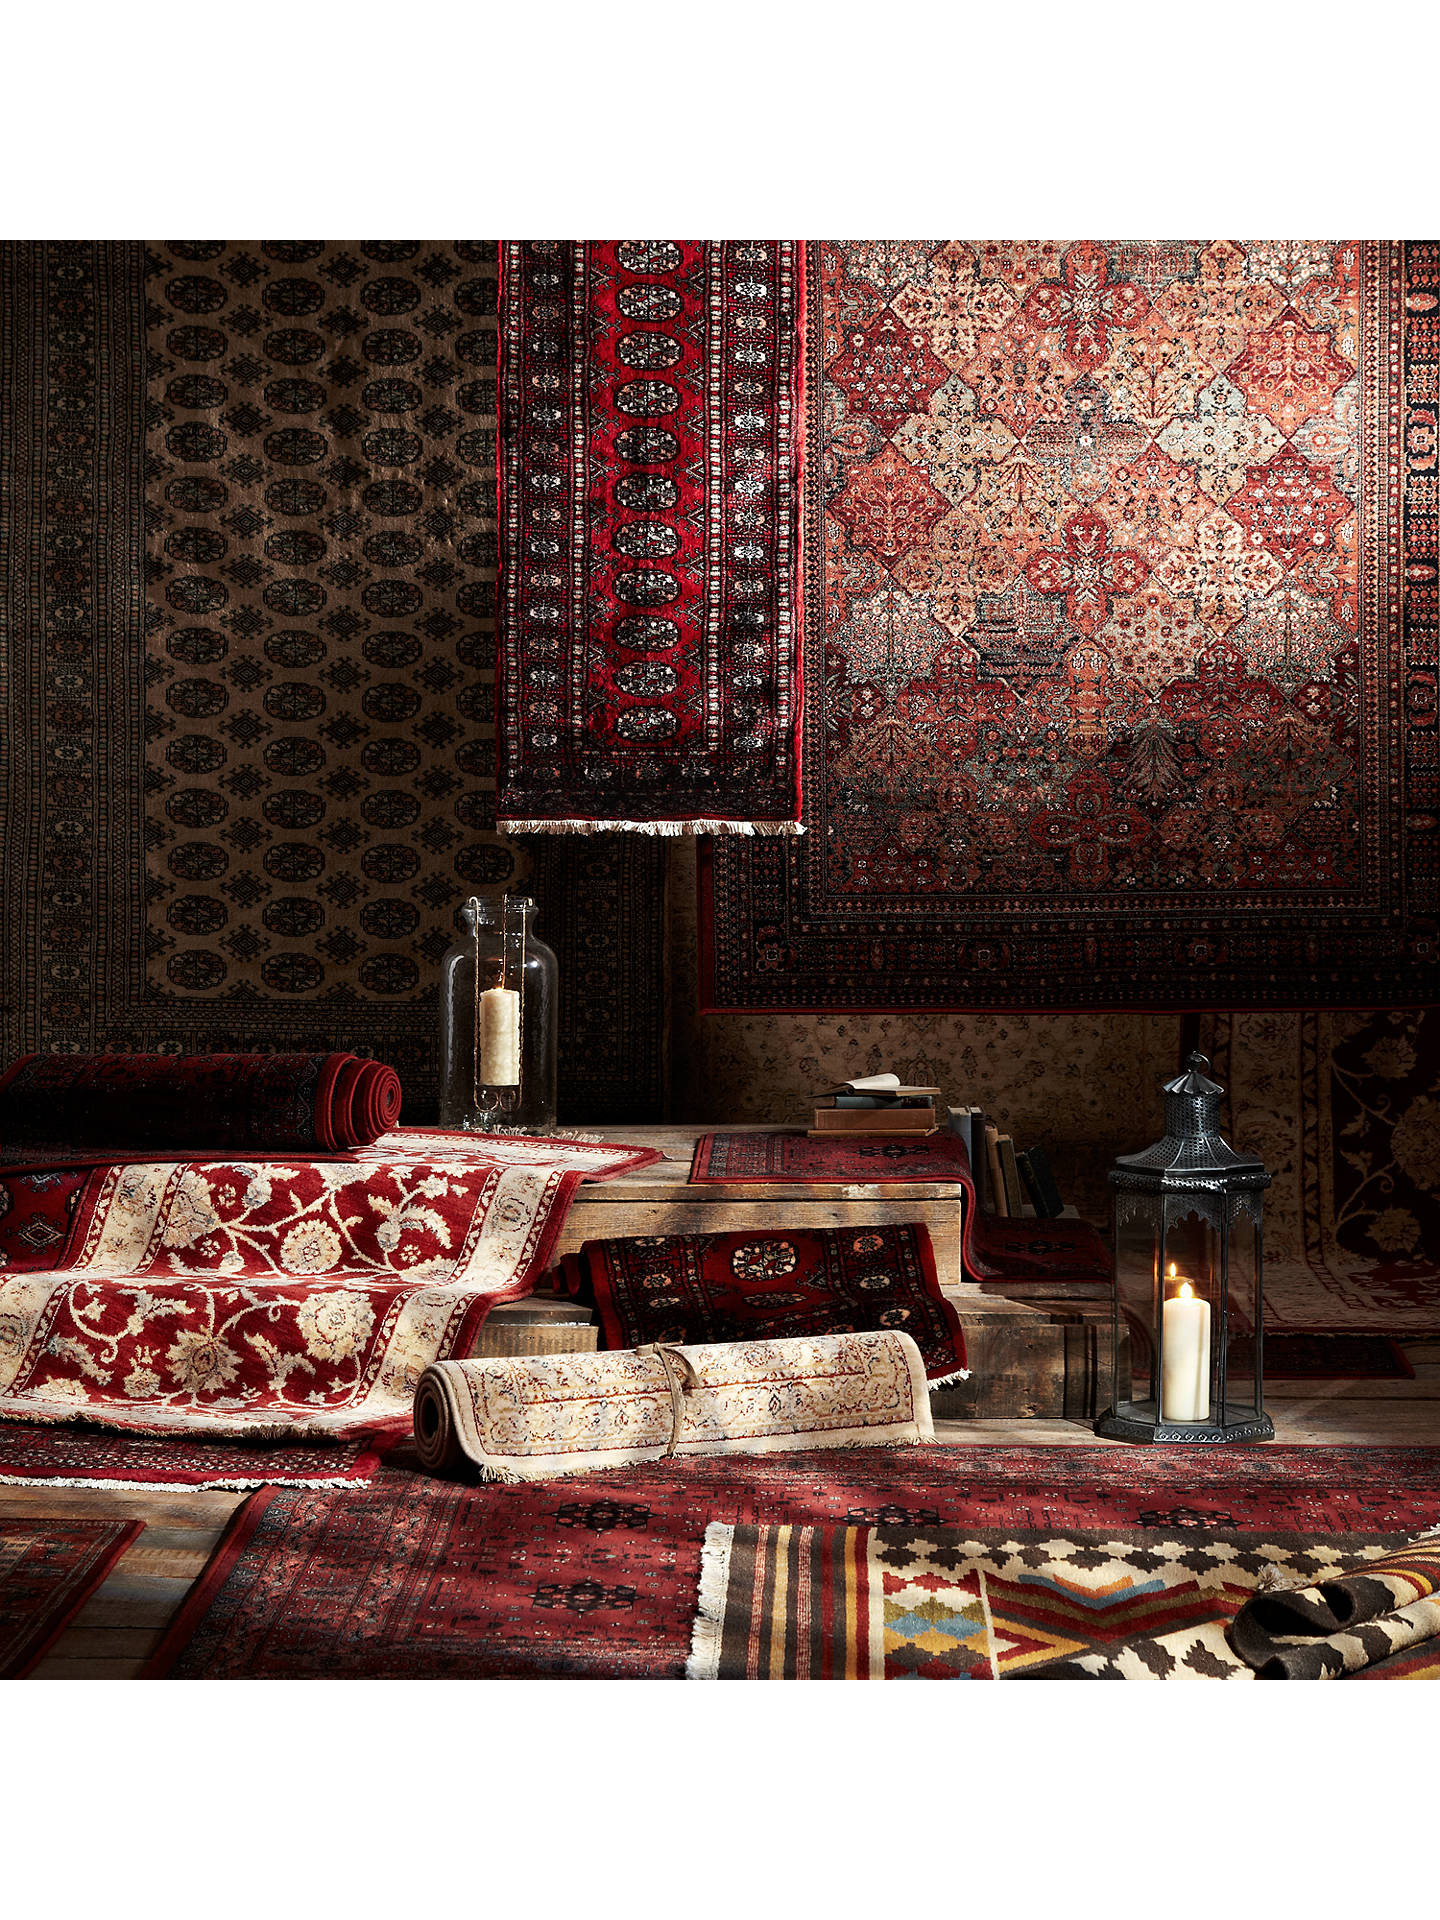 BuyJohn Lewis & Partners Pakistan Bokhara Handmade Rug, Red, L92 x W62cm Online at johnlewis.com